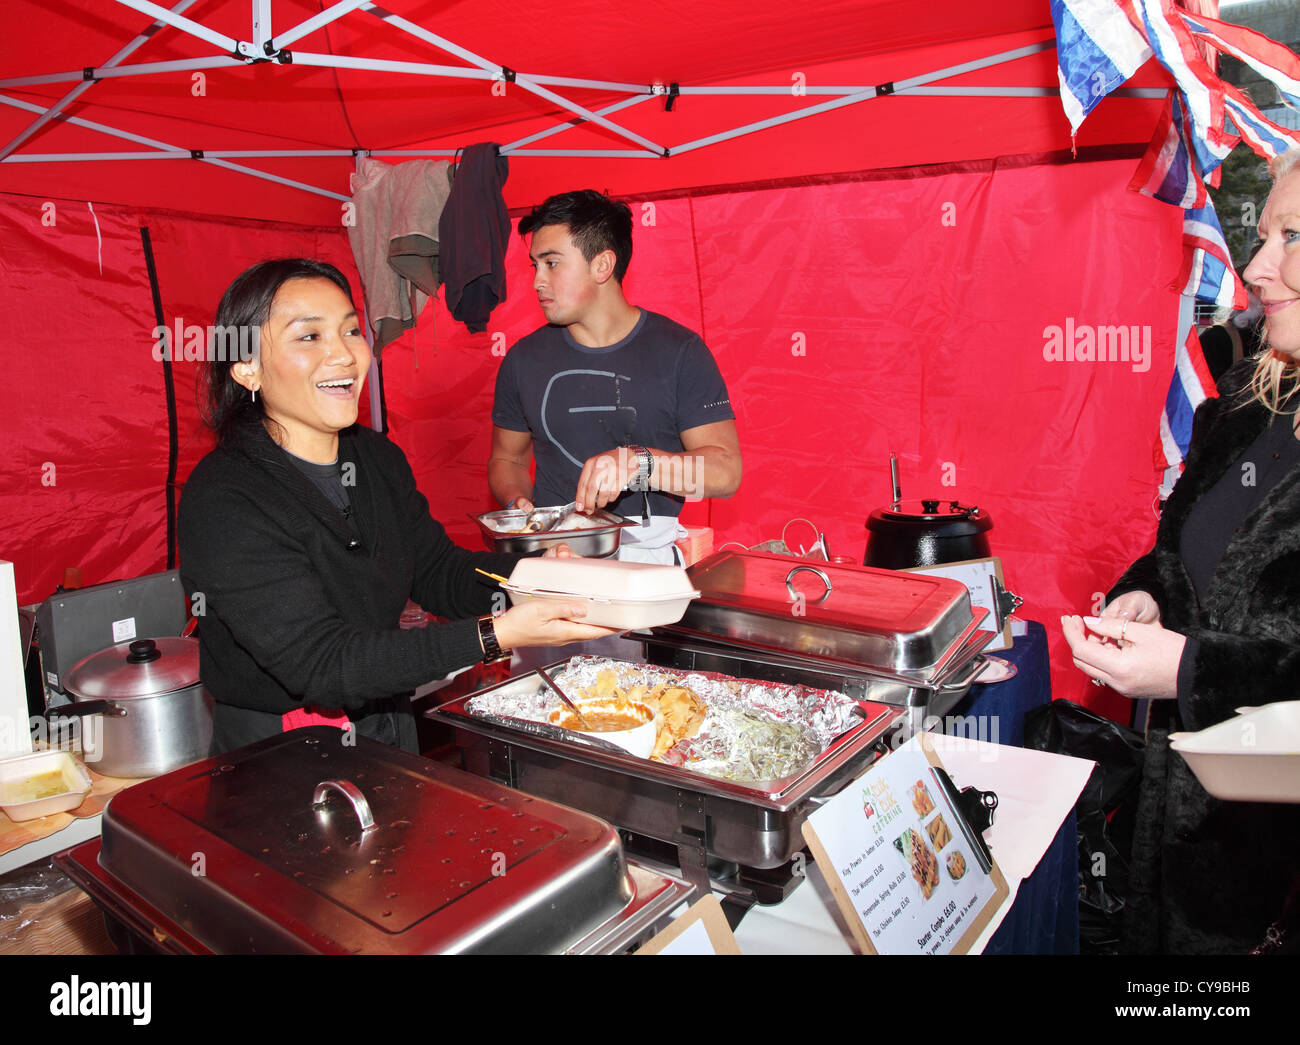 Smiling Asian woman serves Thai food to a customer at Durham City food festival, north east England, UKfoo - Stock Image